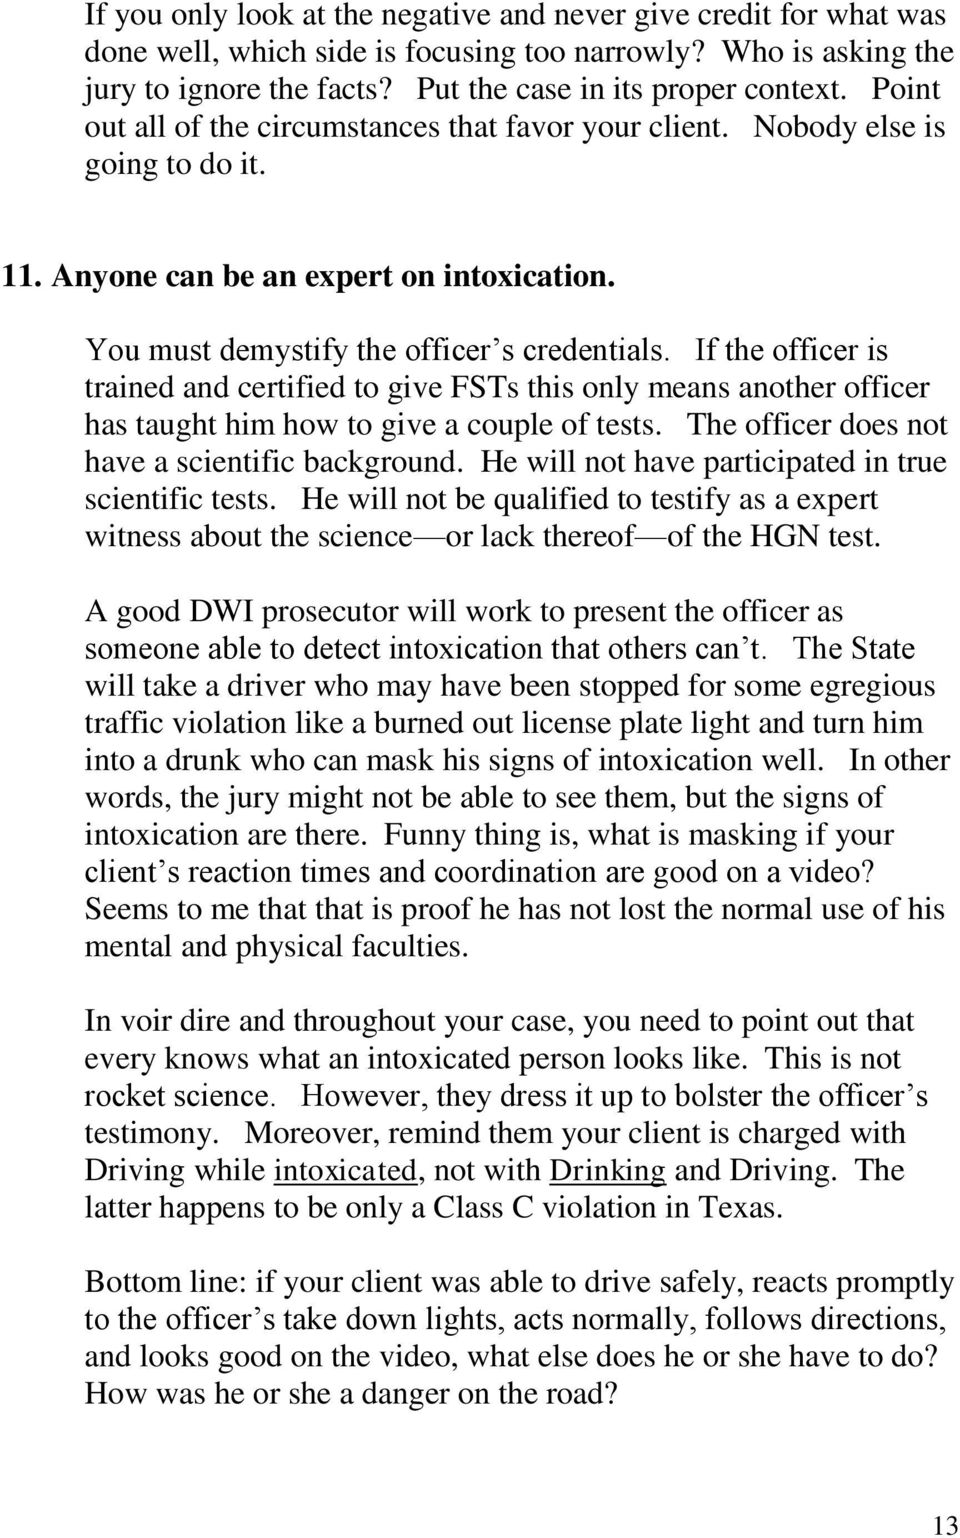 If the officer is trained and certified to give FSTs this only means another officer has taught him how to give a couple of tests. The officer does not have a scientific background.